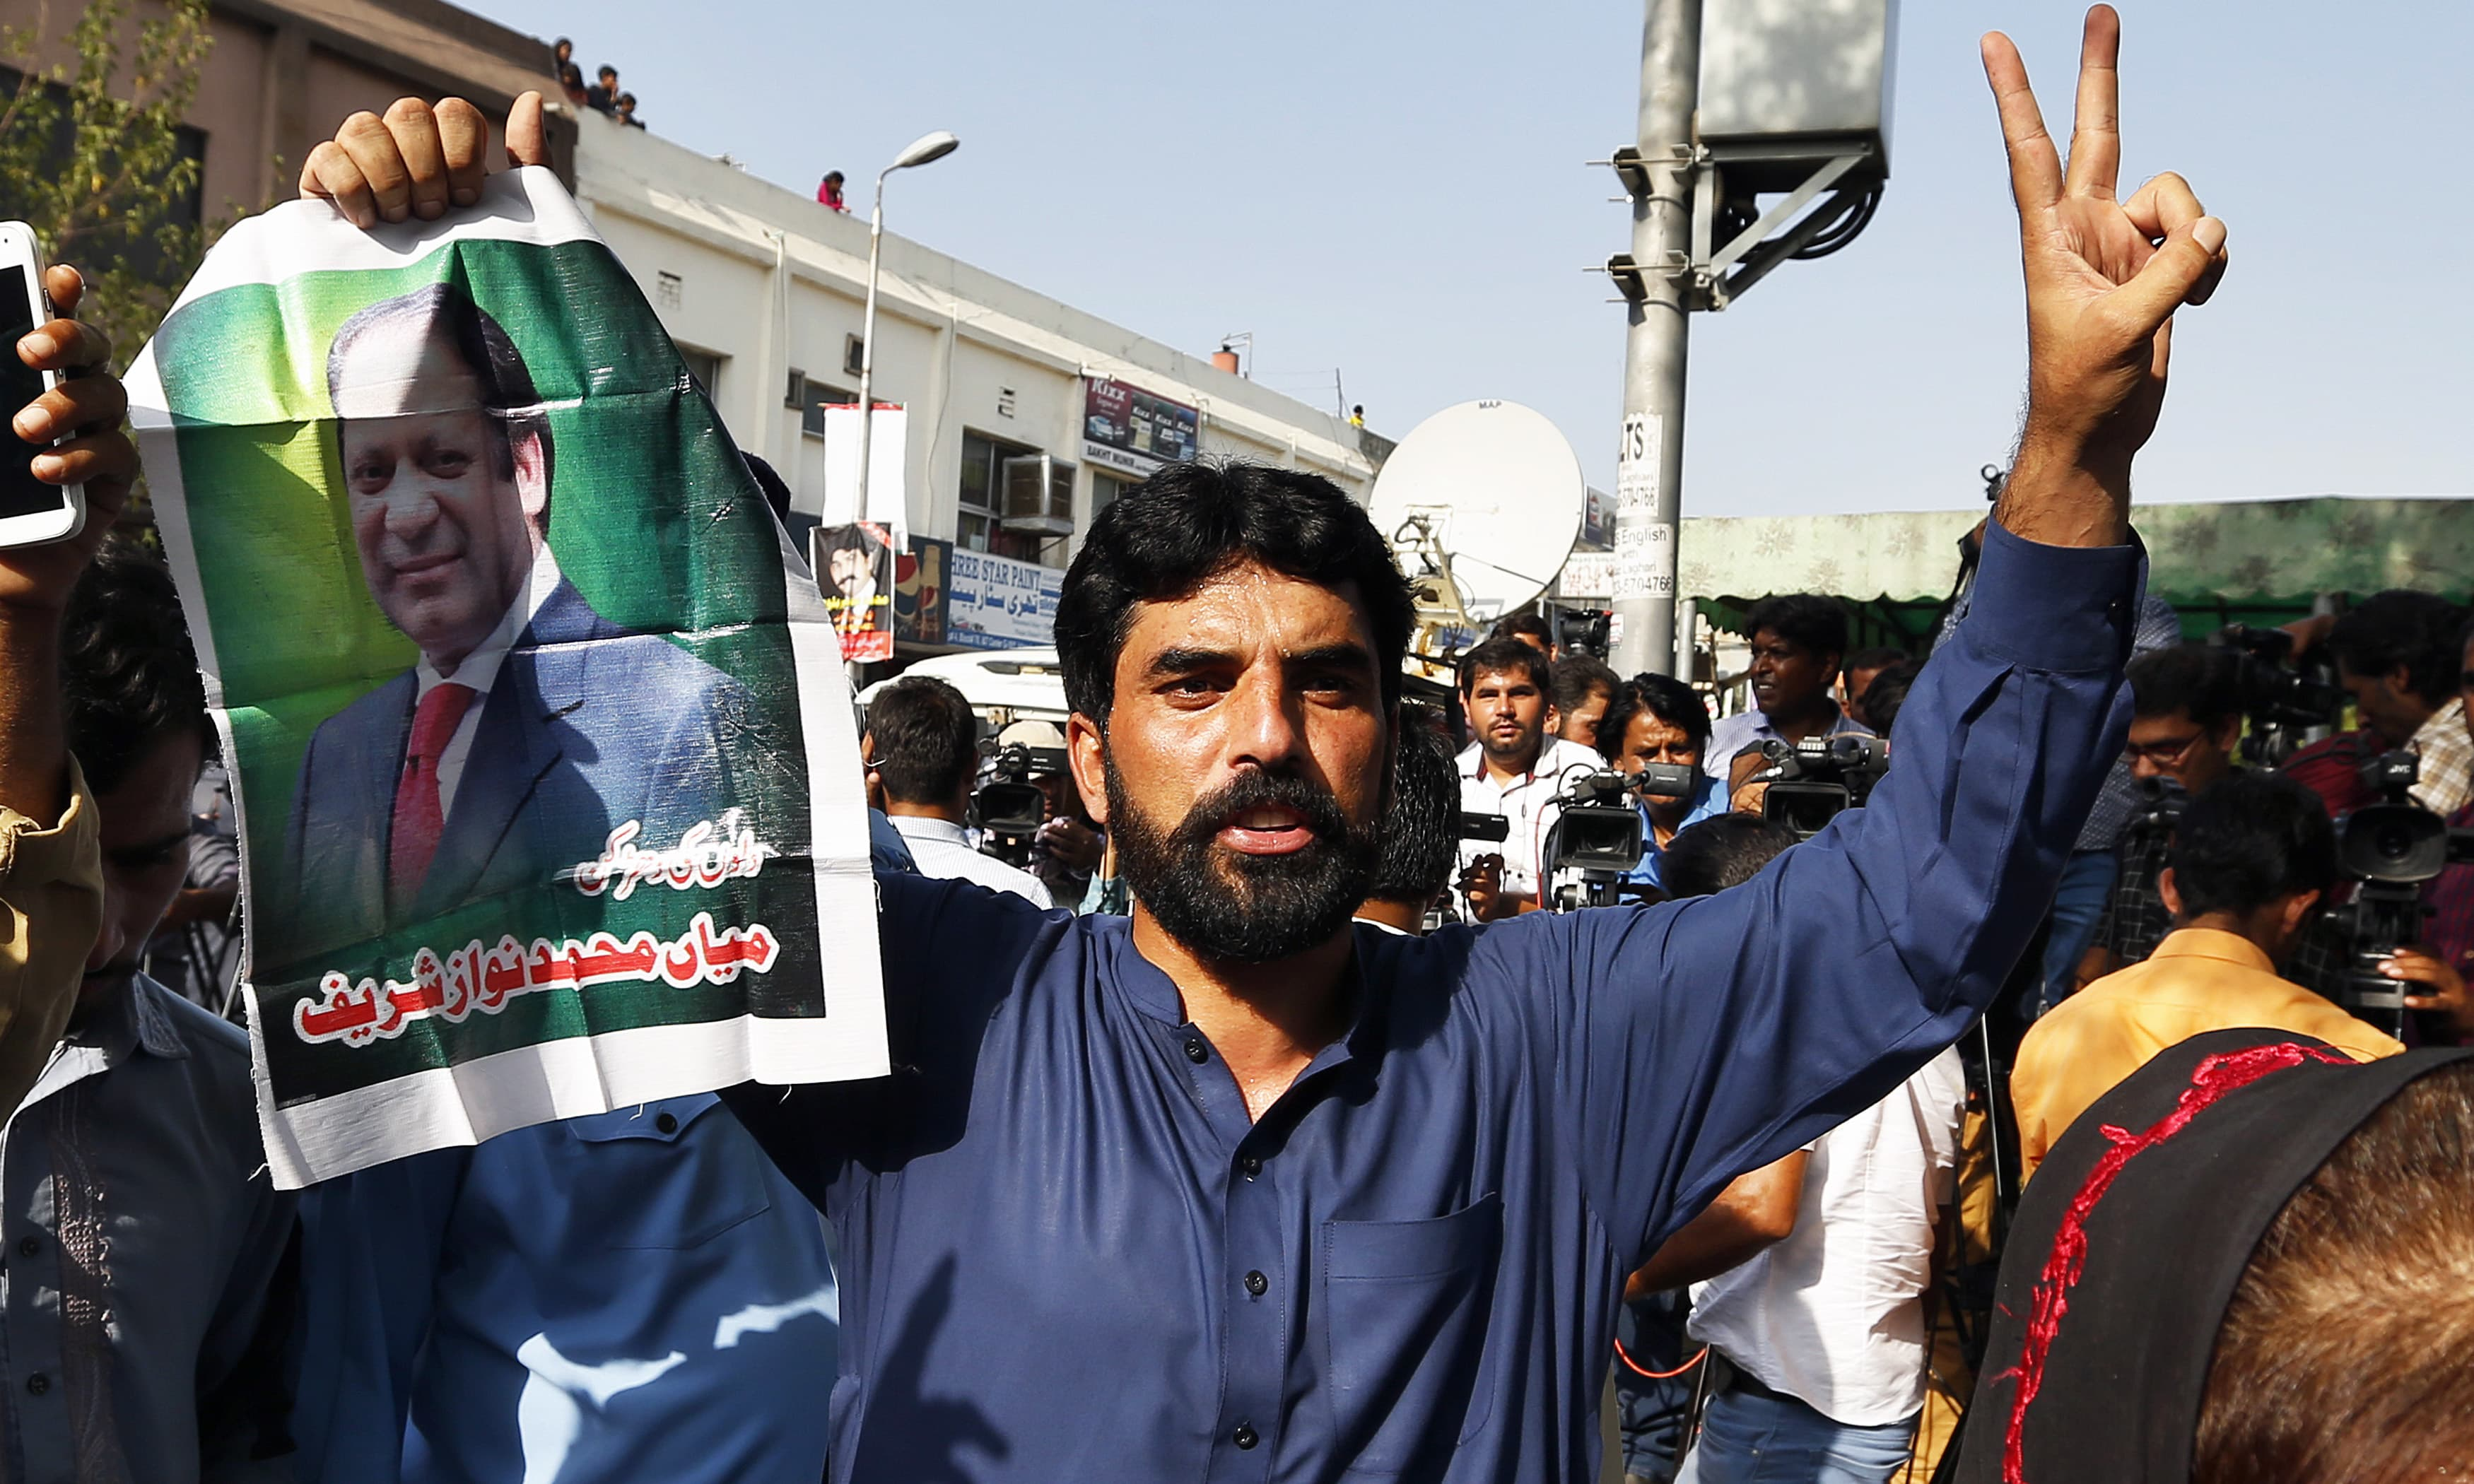 A PML-N supporter celebrates following the court ruling. —AP